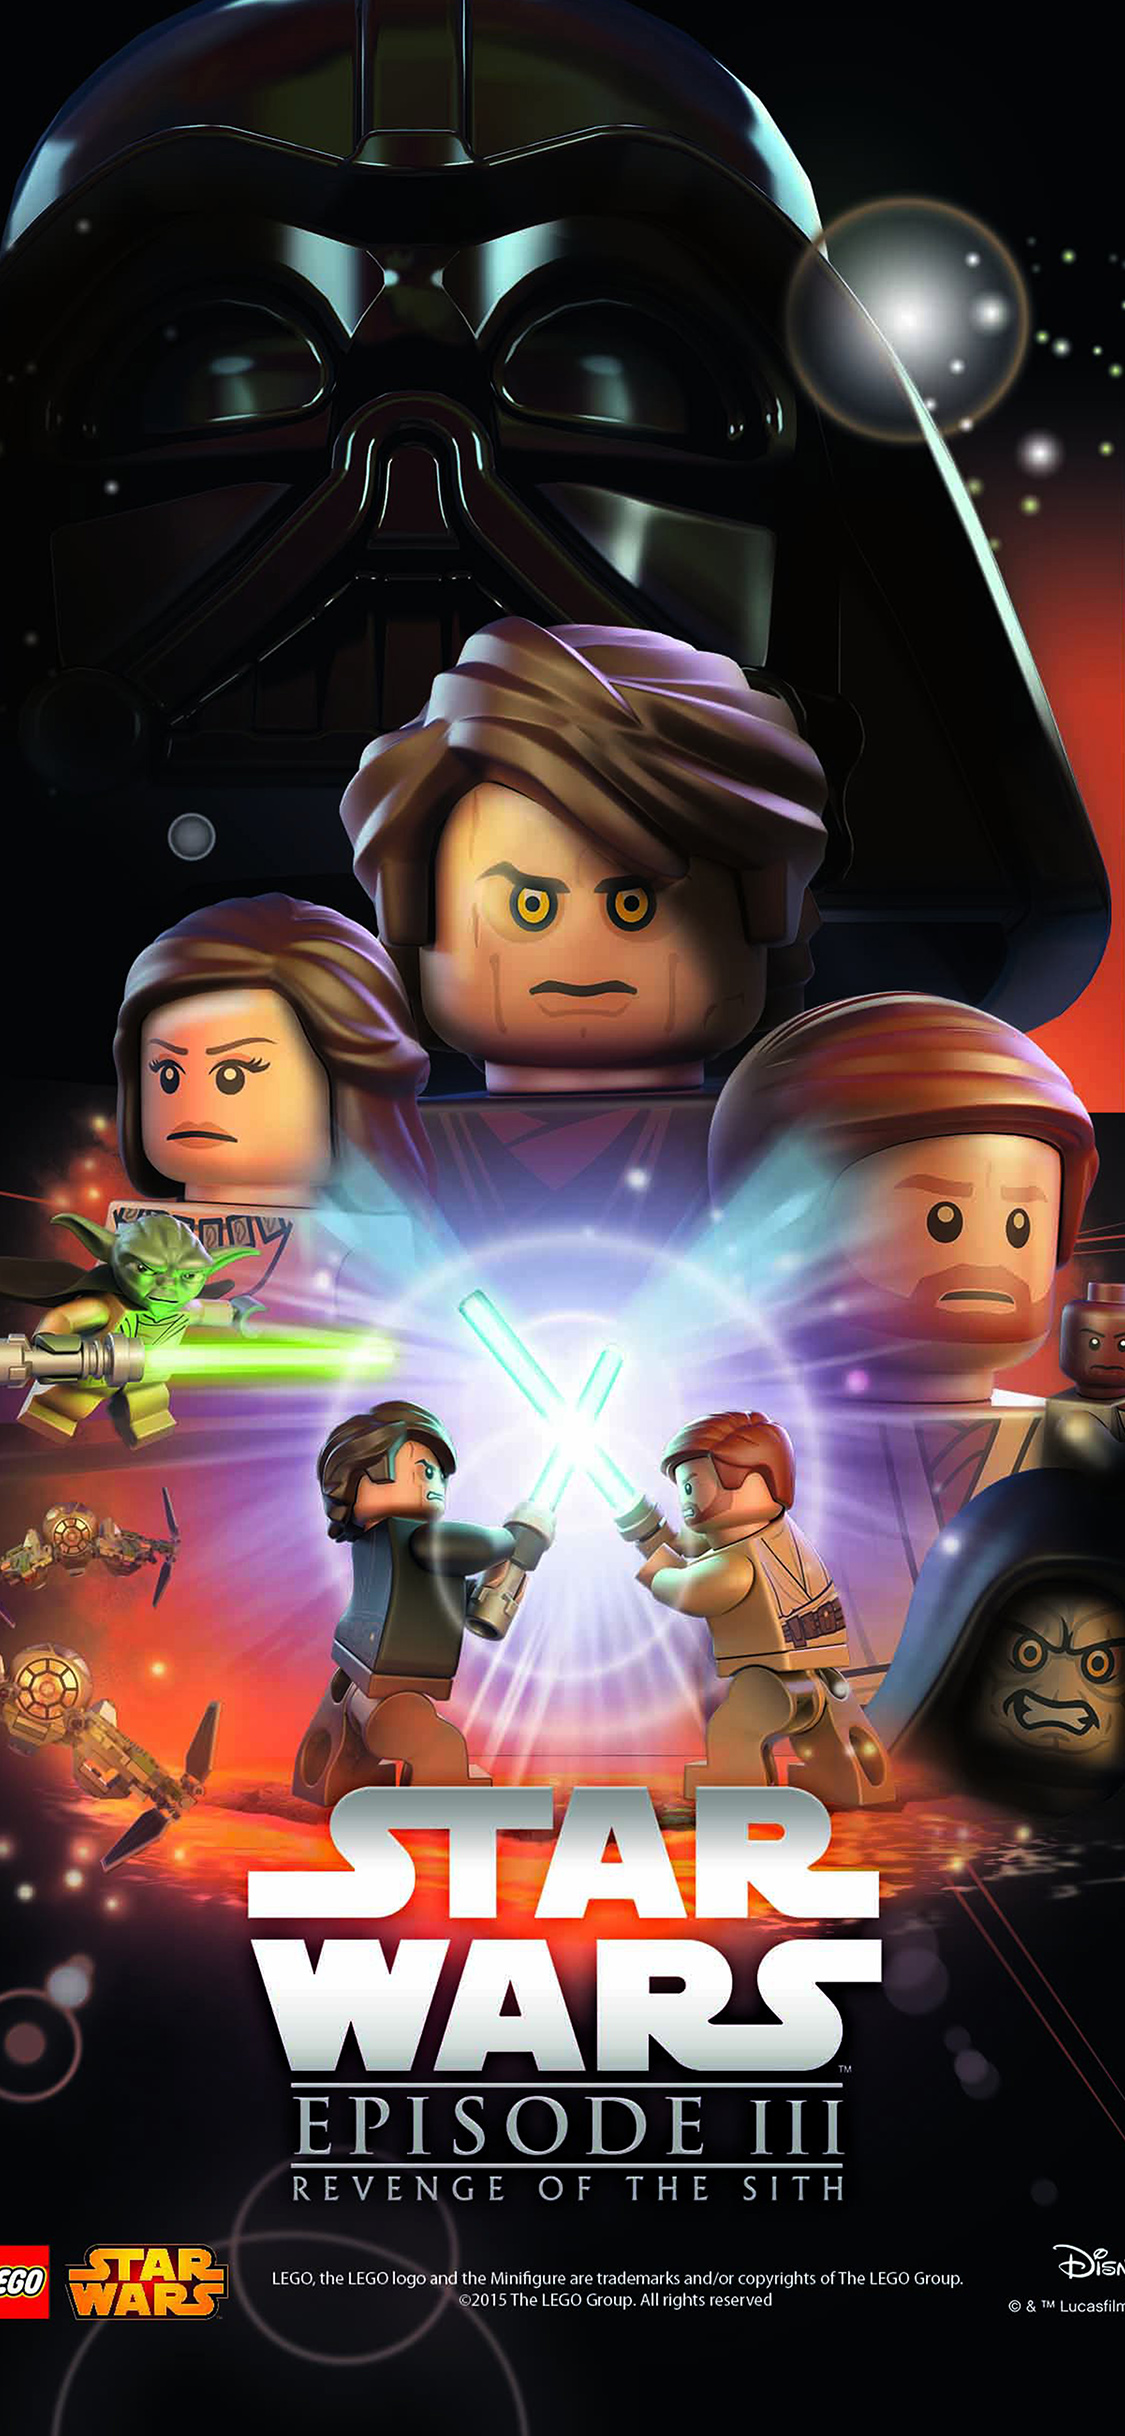 Ap22 Starwars Lego Episode 3 Revenge Of The Sith Art Film